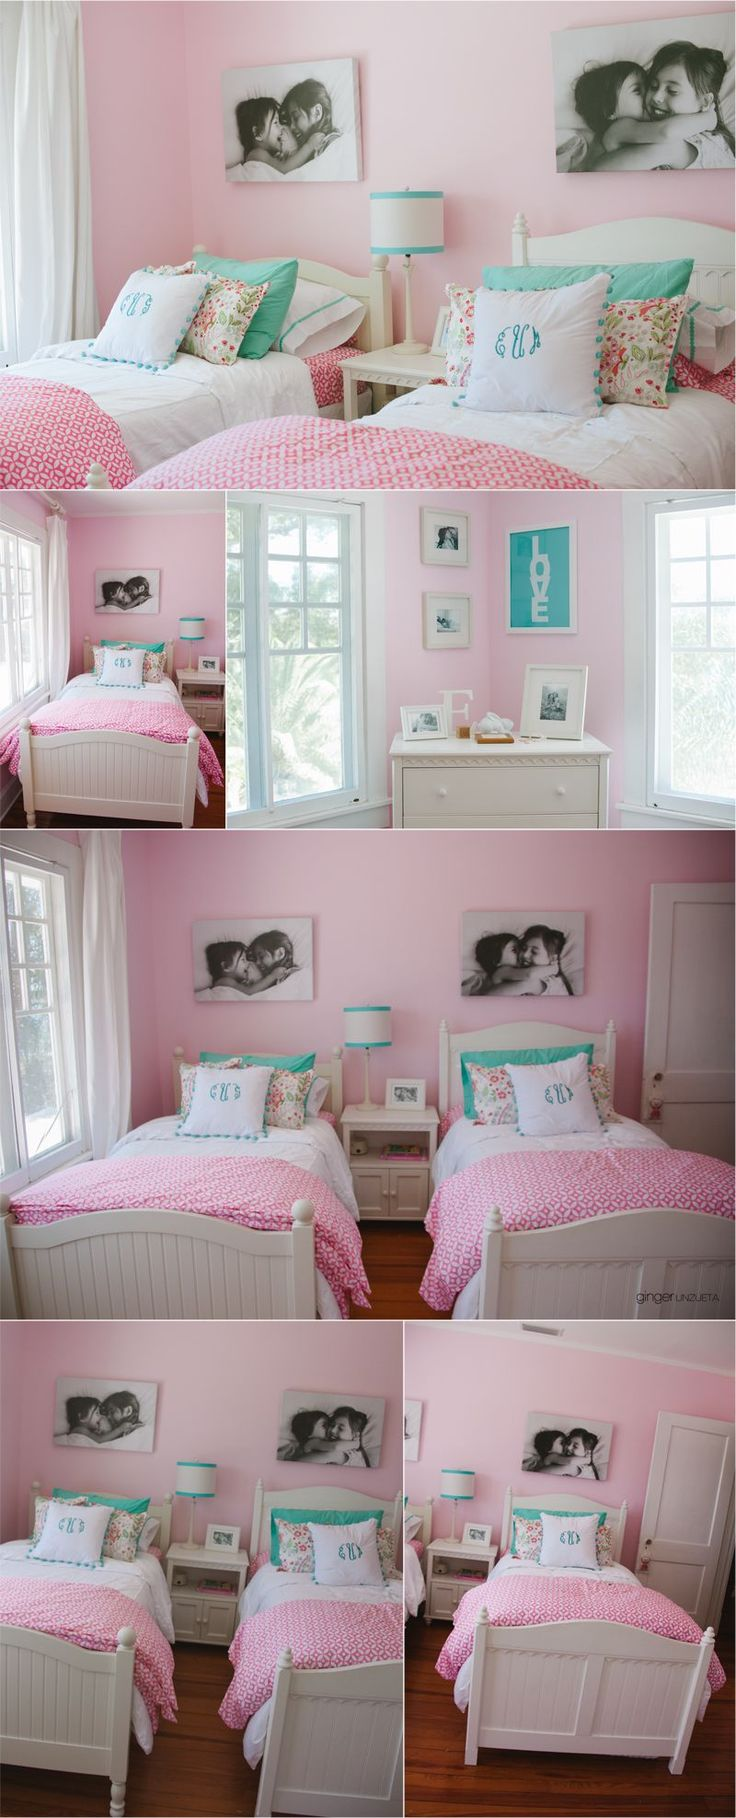 Except I would use turquoise for the walls - thats too much pink for me!